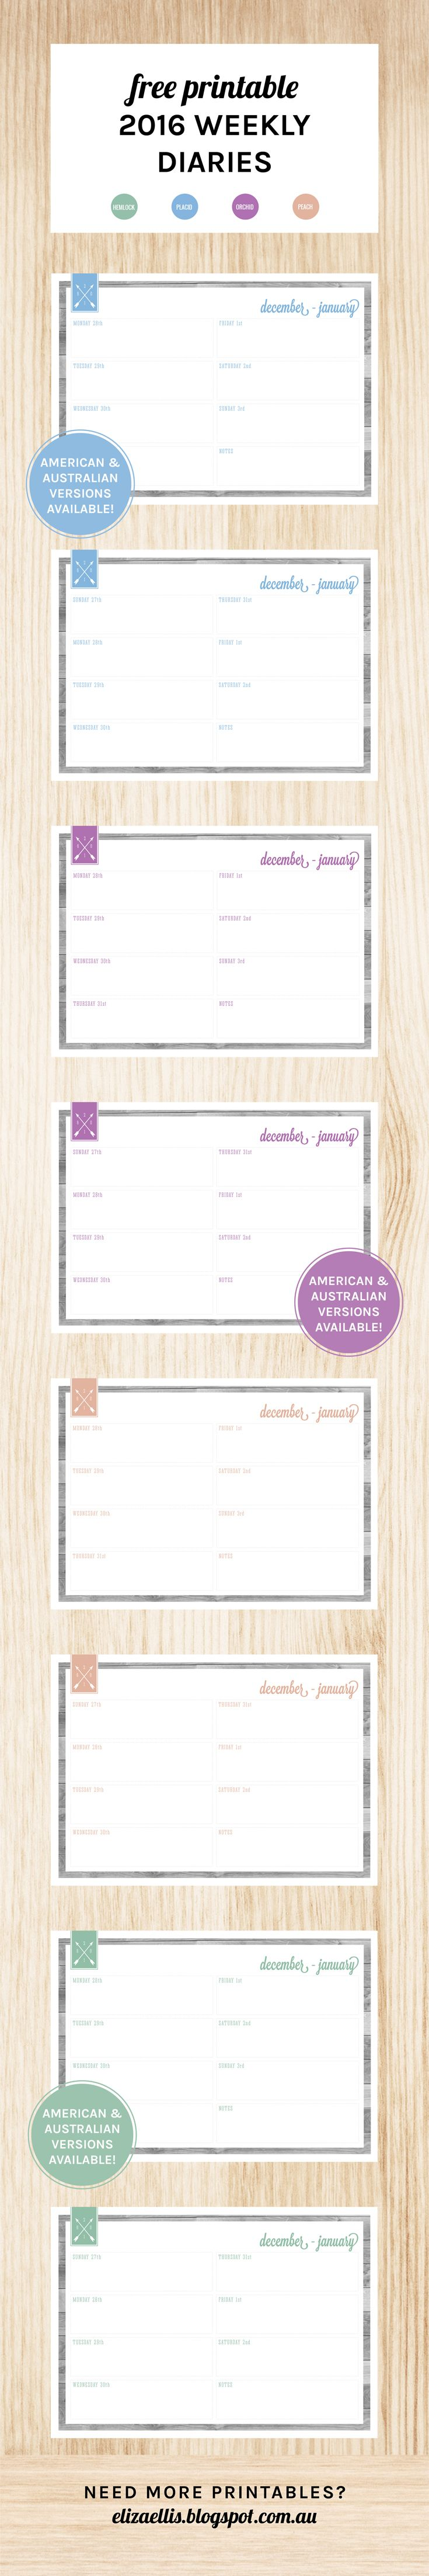 Free Printable 2016 Weekly Diary by Eliza Ellis. Available in both Australian/UK and American versions, as well as in 4 colors. Check out my blog for loads more planners, diaries, calendars and organizers!